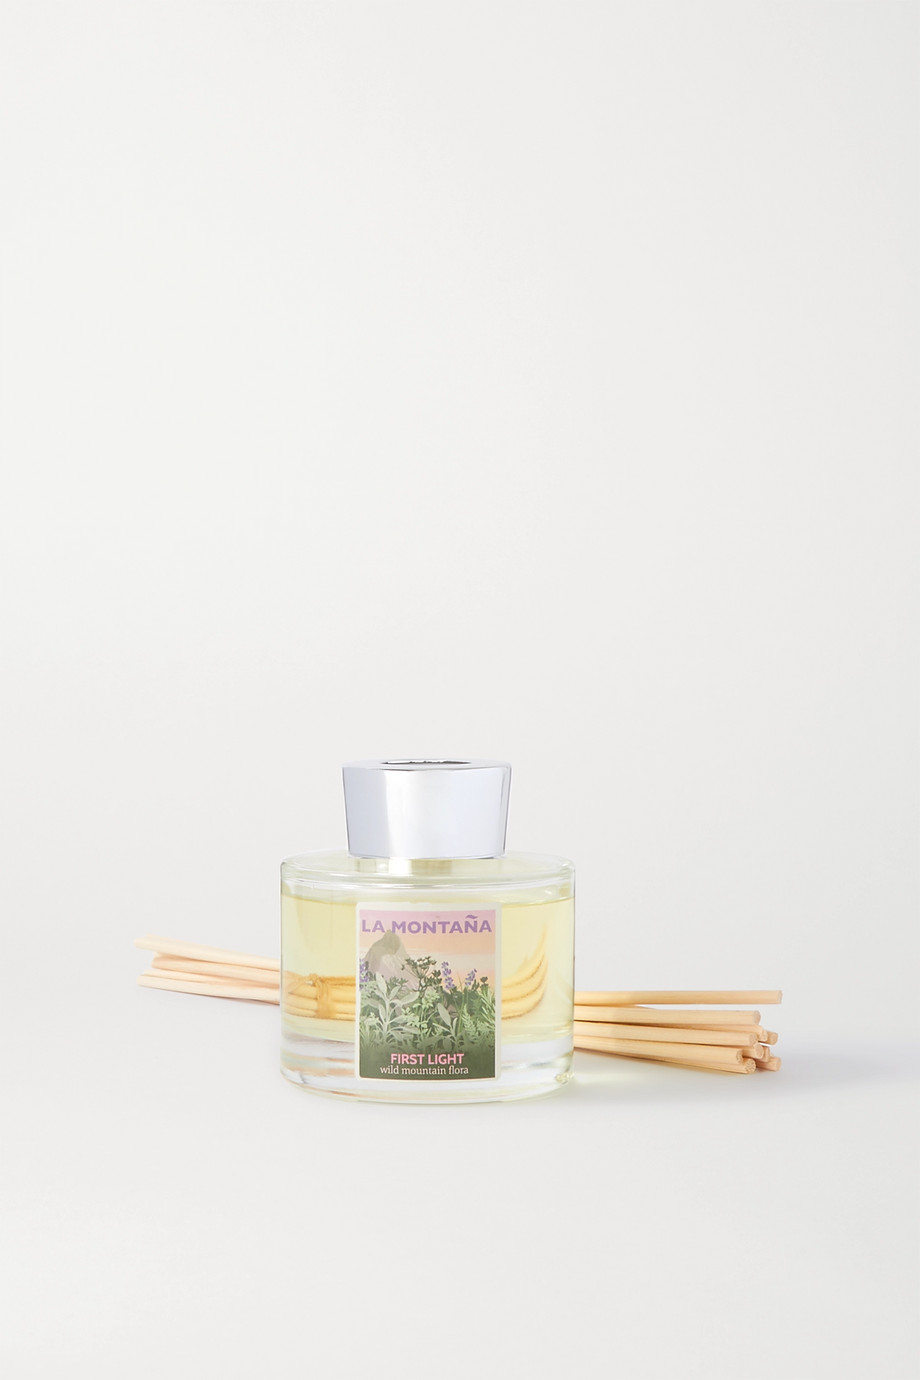 LA MONTAÑA Reed Diffuser - First Light, 120ml